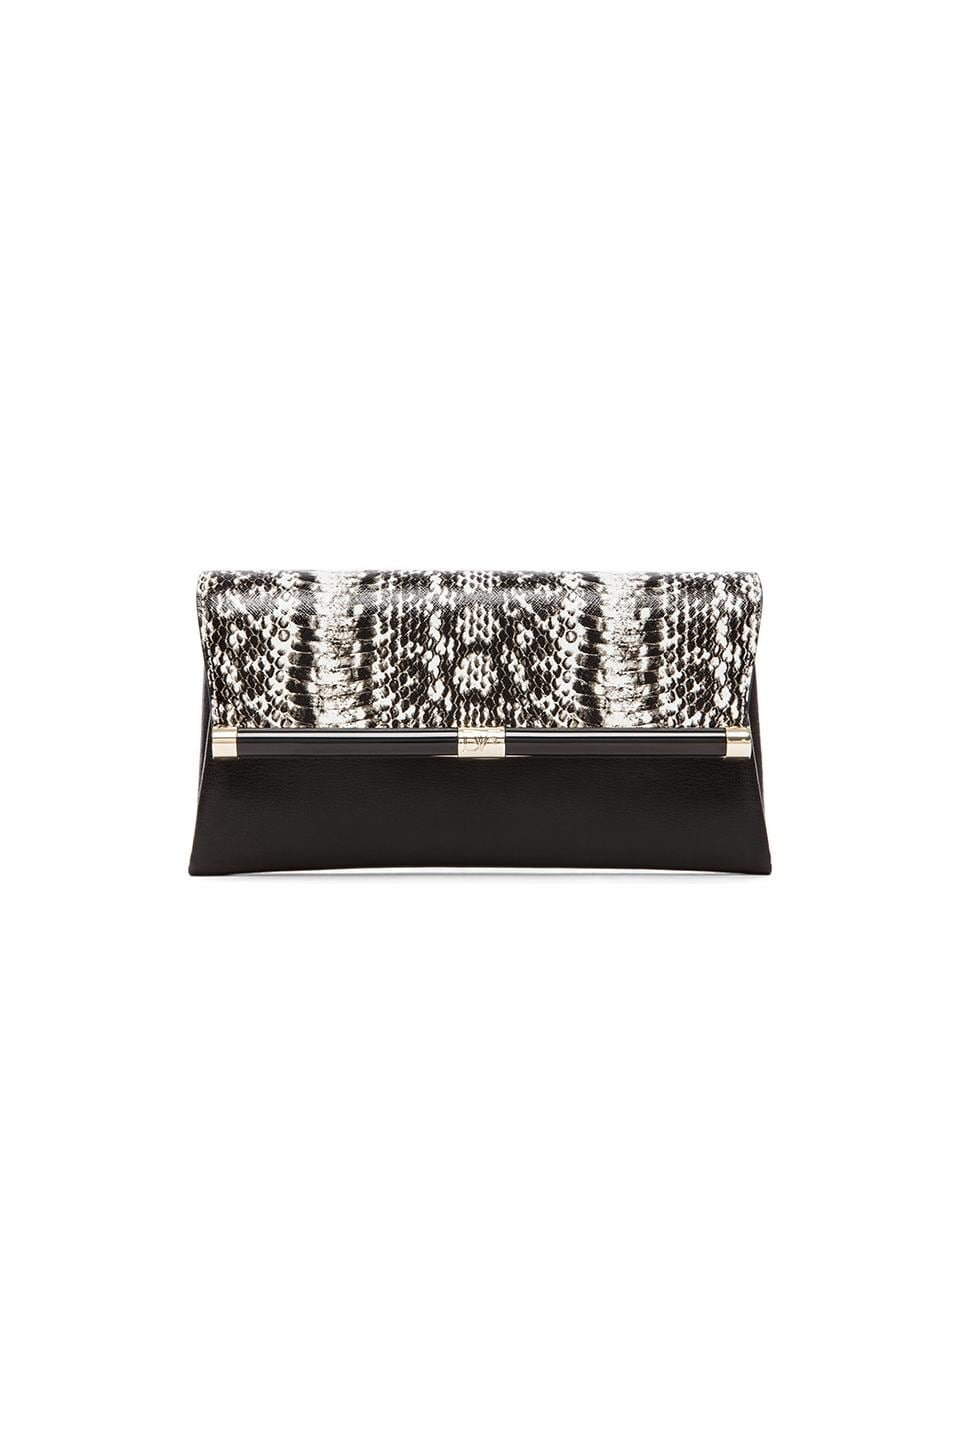 Diane von Furstenberg Envelope Clutch in Black & White